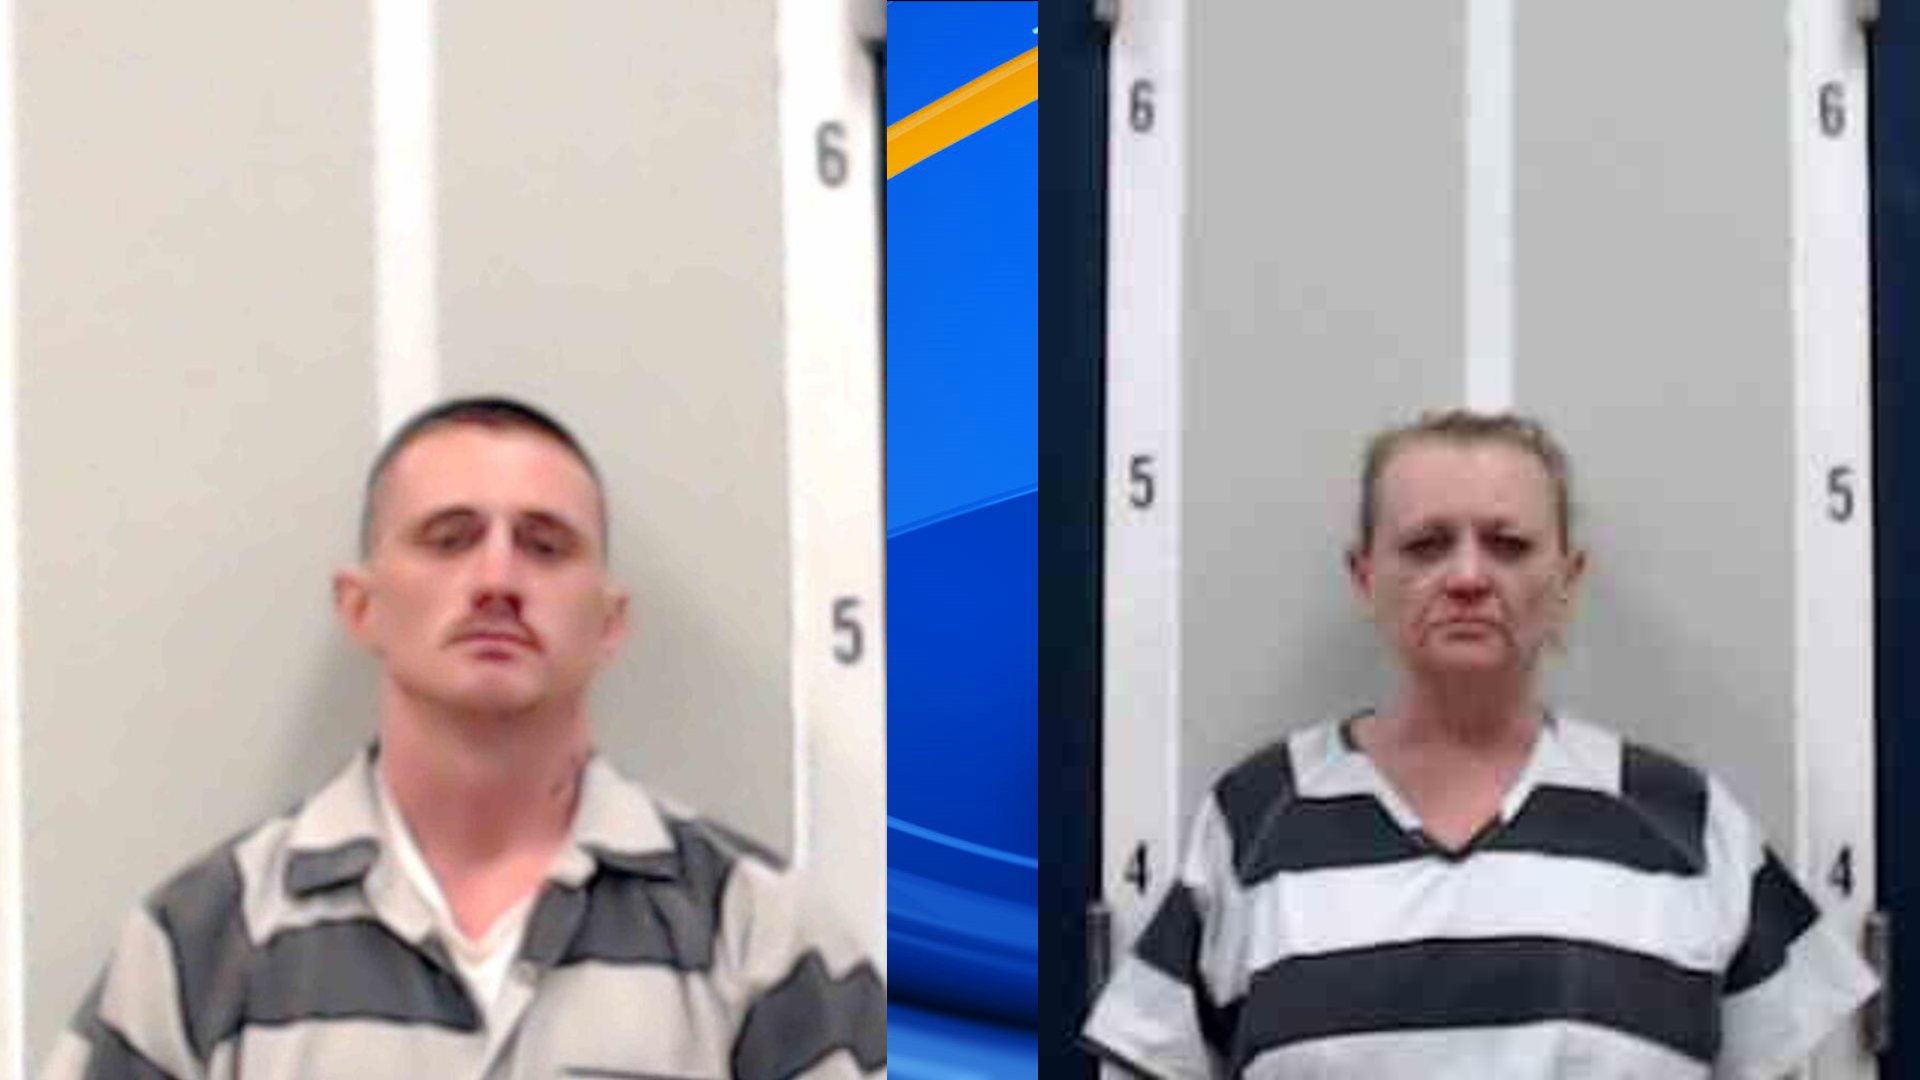 Ethan Rogers ran away and Karen Henderson was arrested after authorities searched a Fort Payne home Tuesday night.